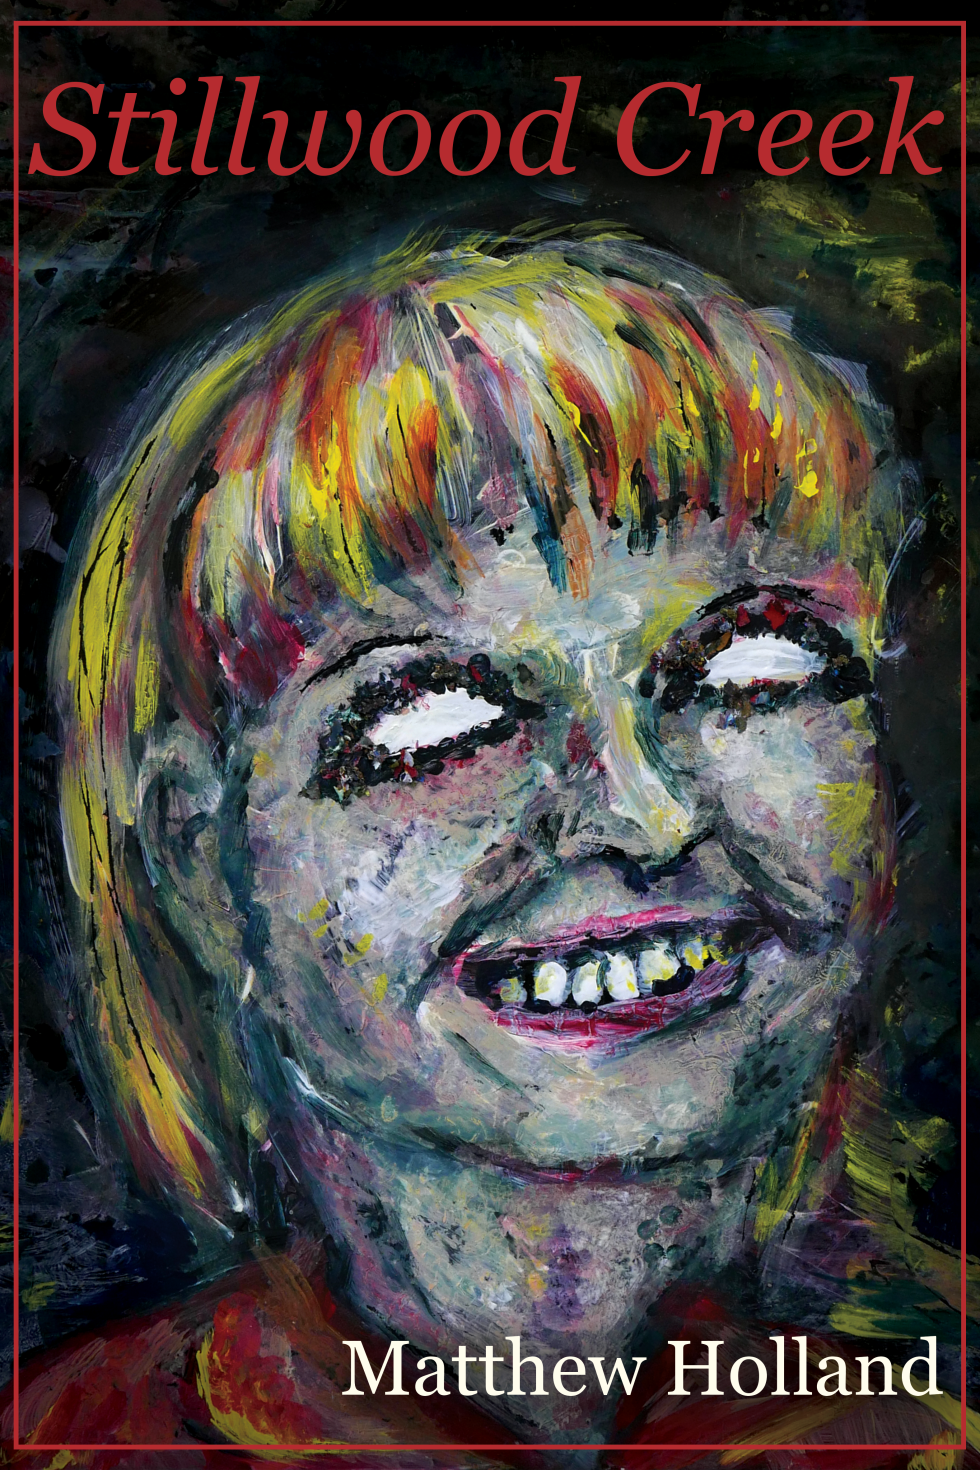 """Acrylic portrait of a smiling figure with white glowing eyes. Text: """"Stillwood Creek"""" """"Matthew Holland"""""""